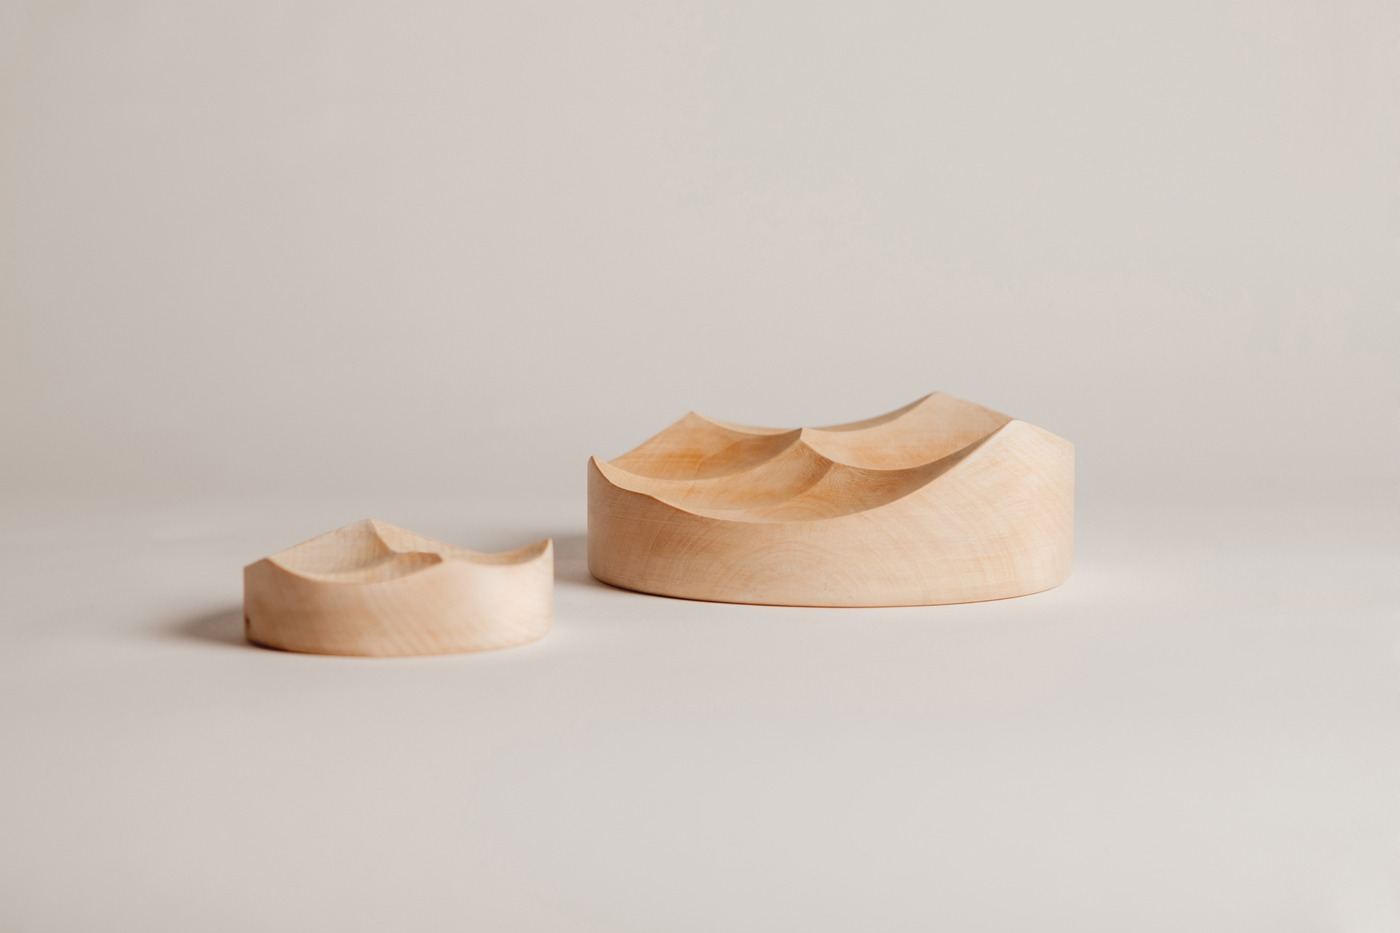 SolidSmack-Kutarq-Carved-Bowl-4